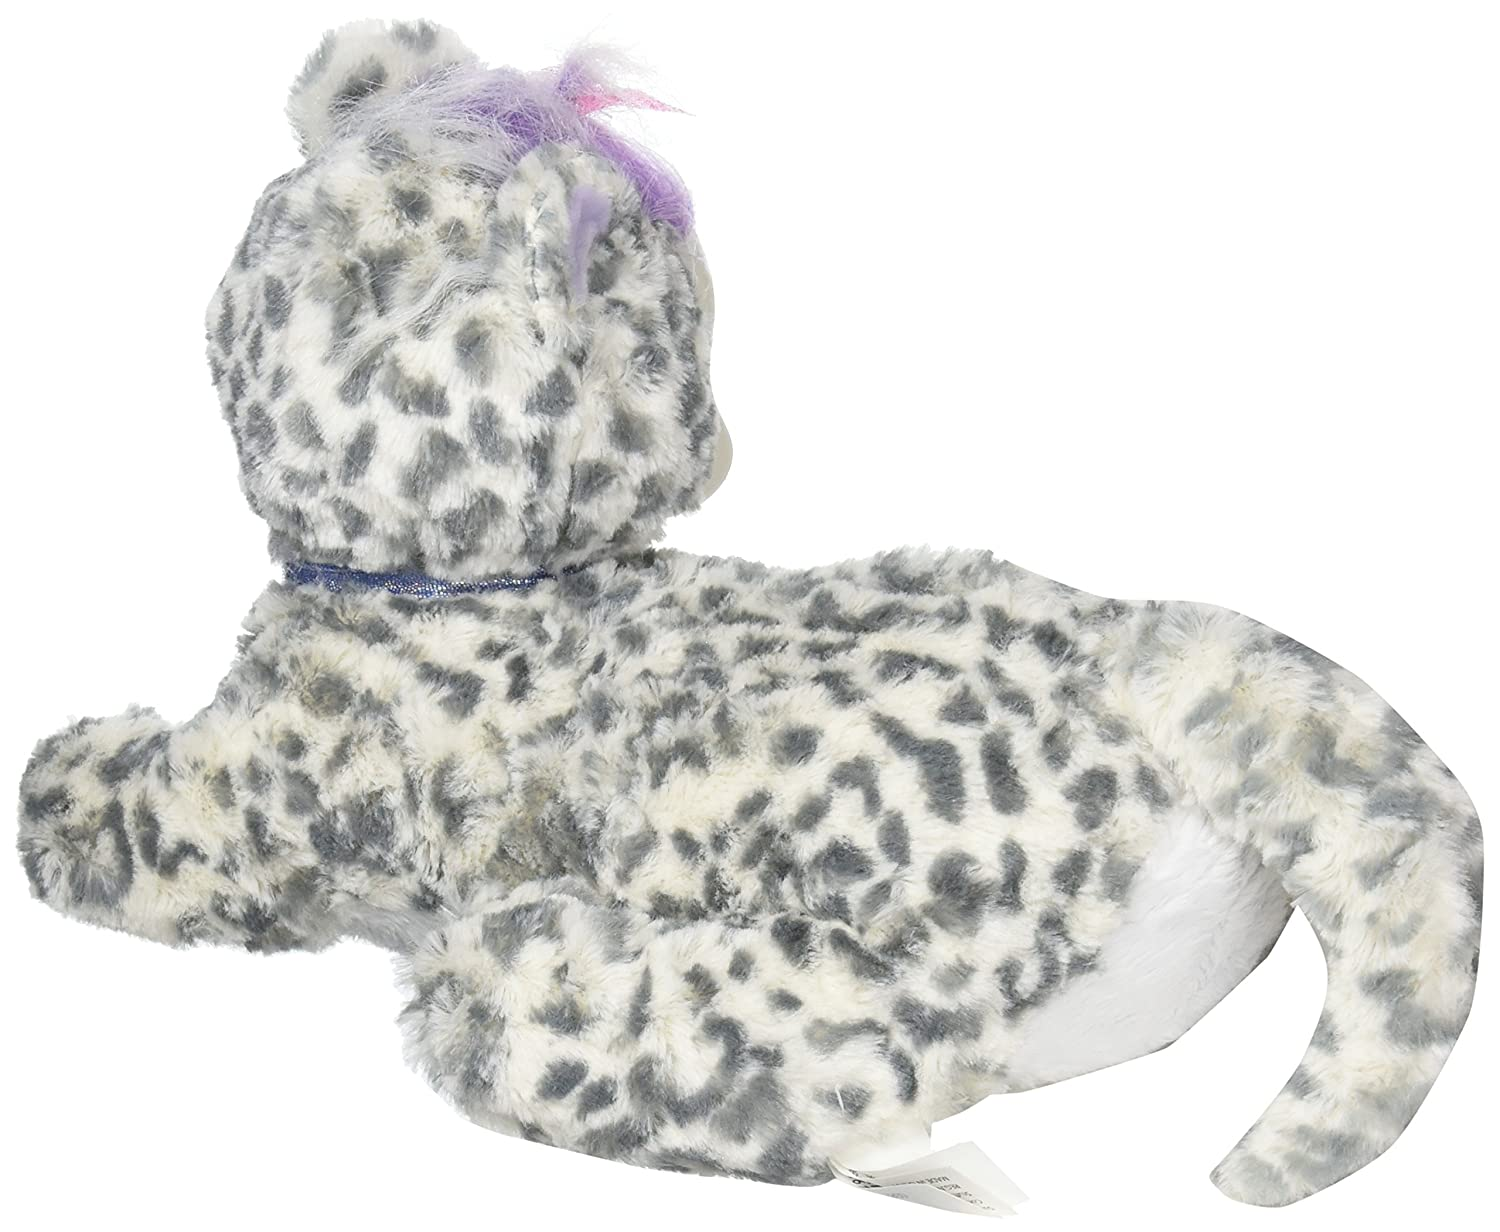 JP Puppy Surprise Peluche de Guepardo quot;Safari Duchess Cheetah Wave 1